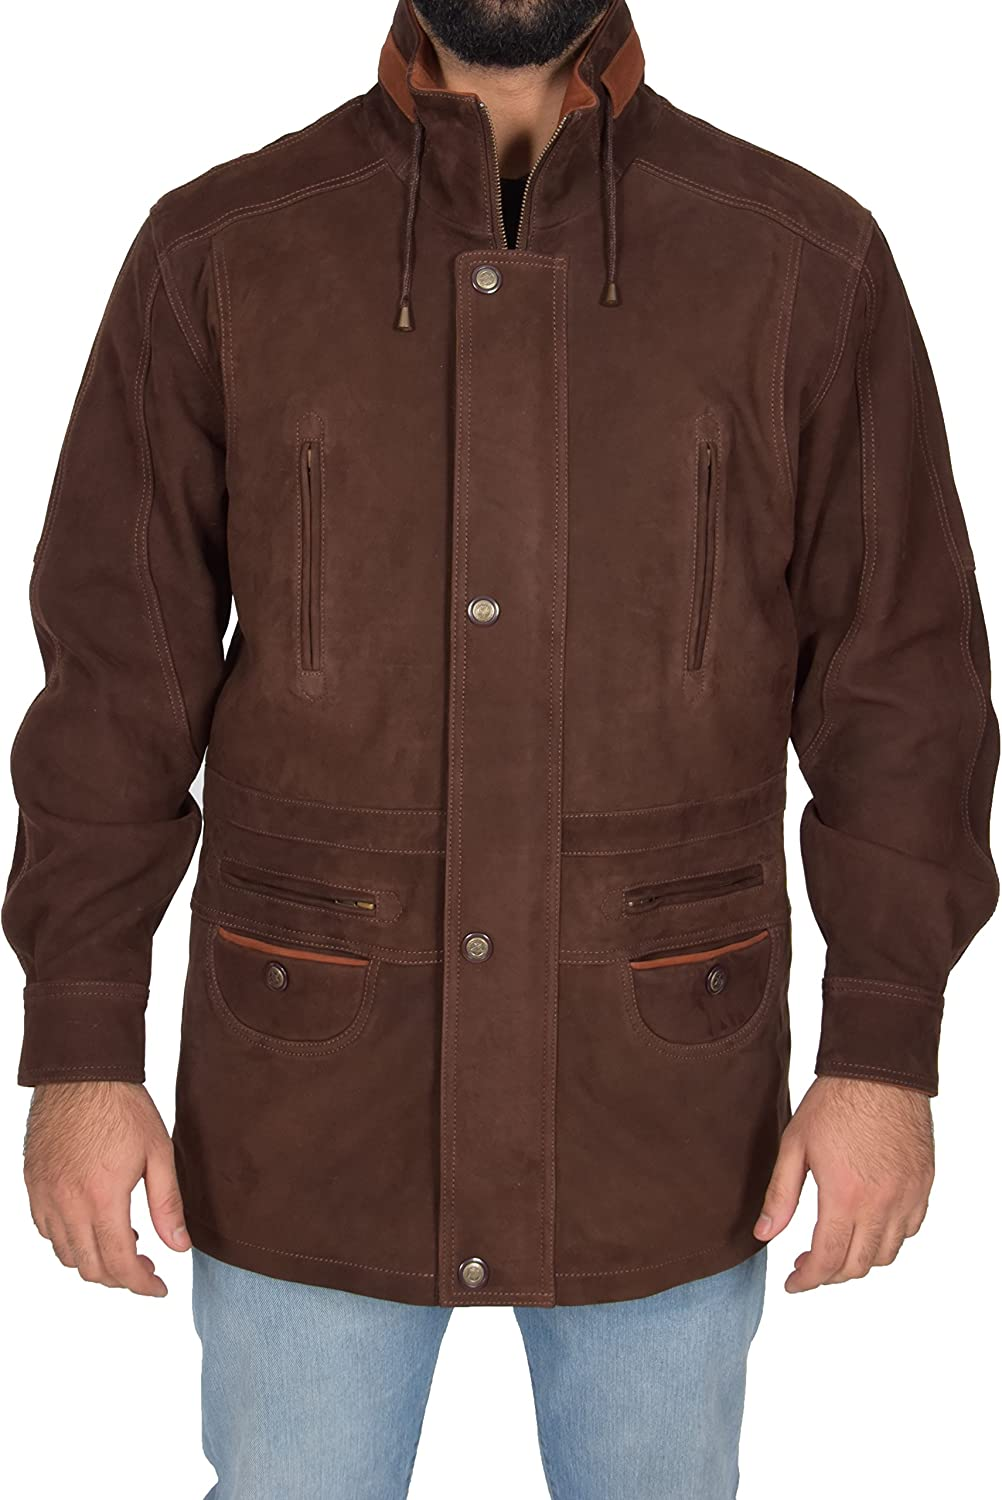 Mens Leather Parka Car Coat Classic Overcoat Mid Length Jacket Jason Brown Nubuck